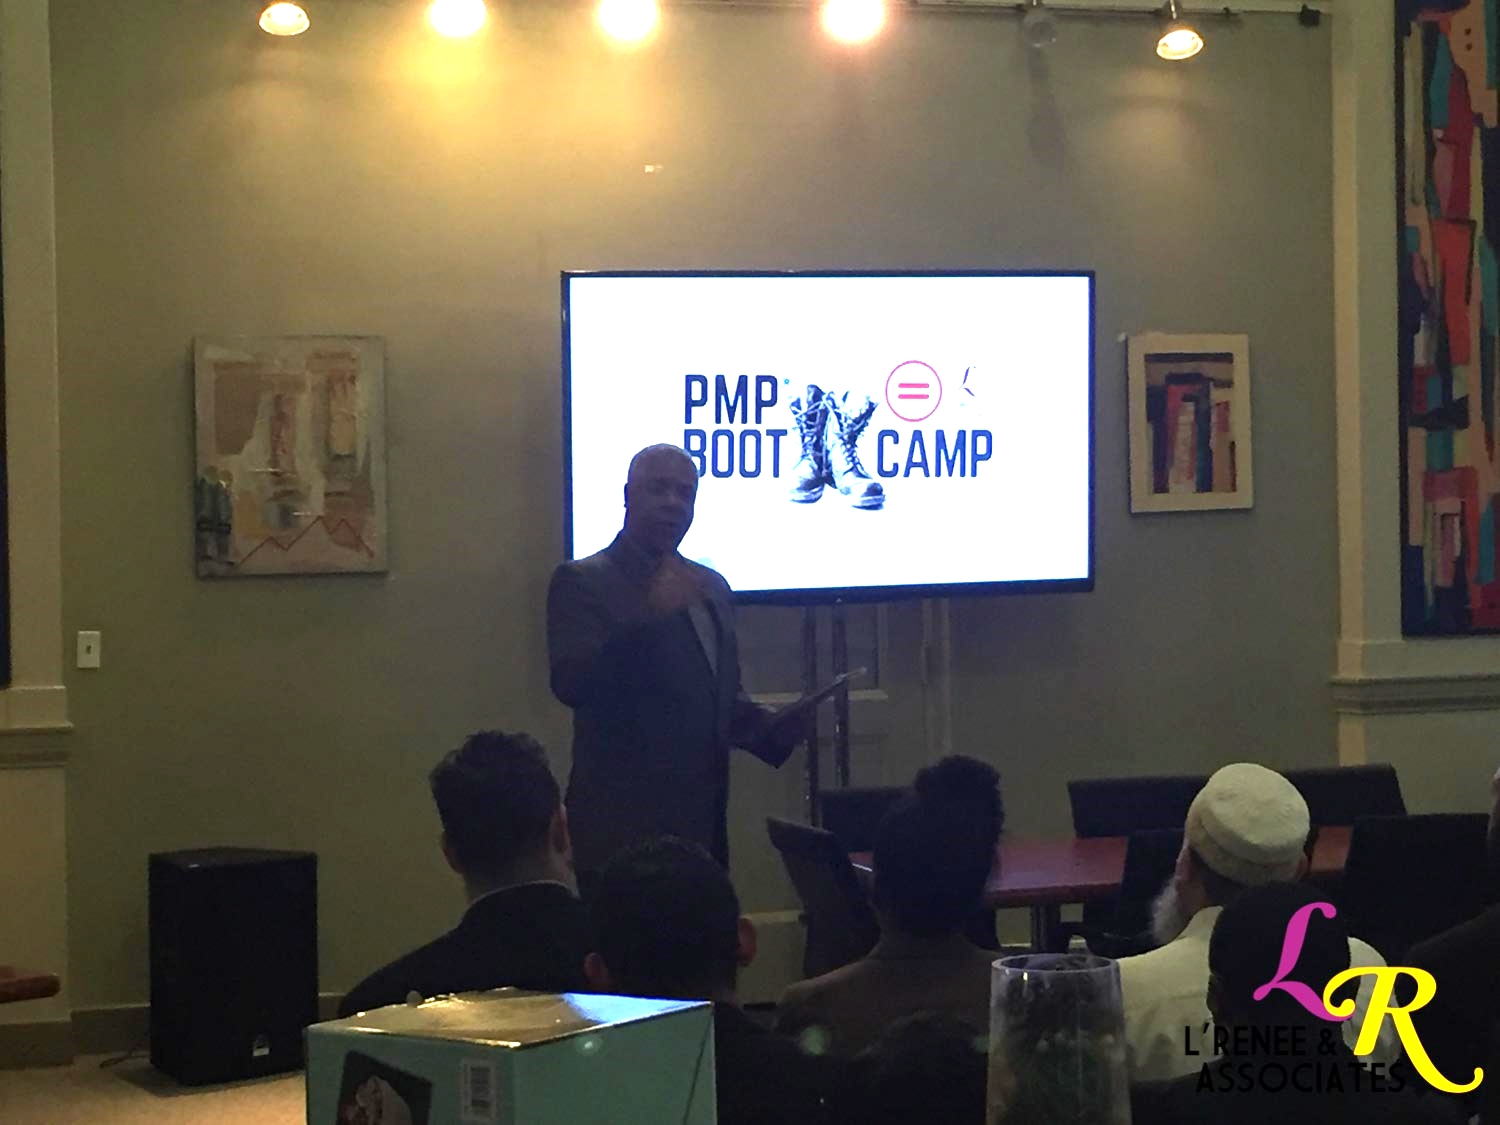 LRA - PMP Boot Camp 22.jpg